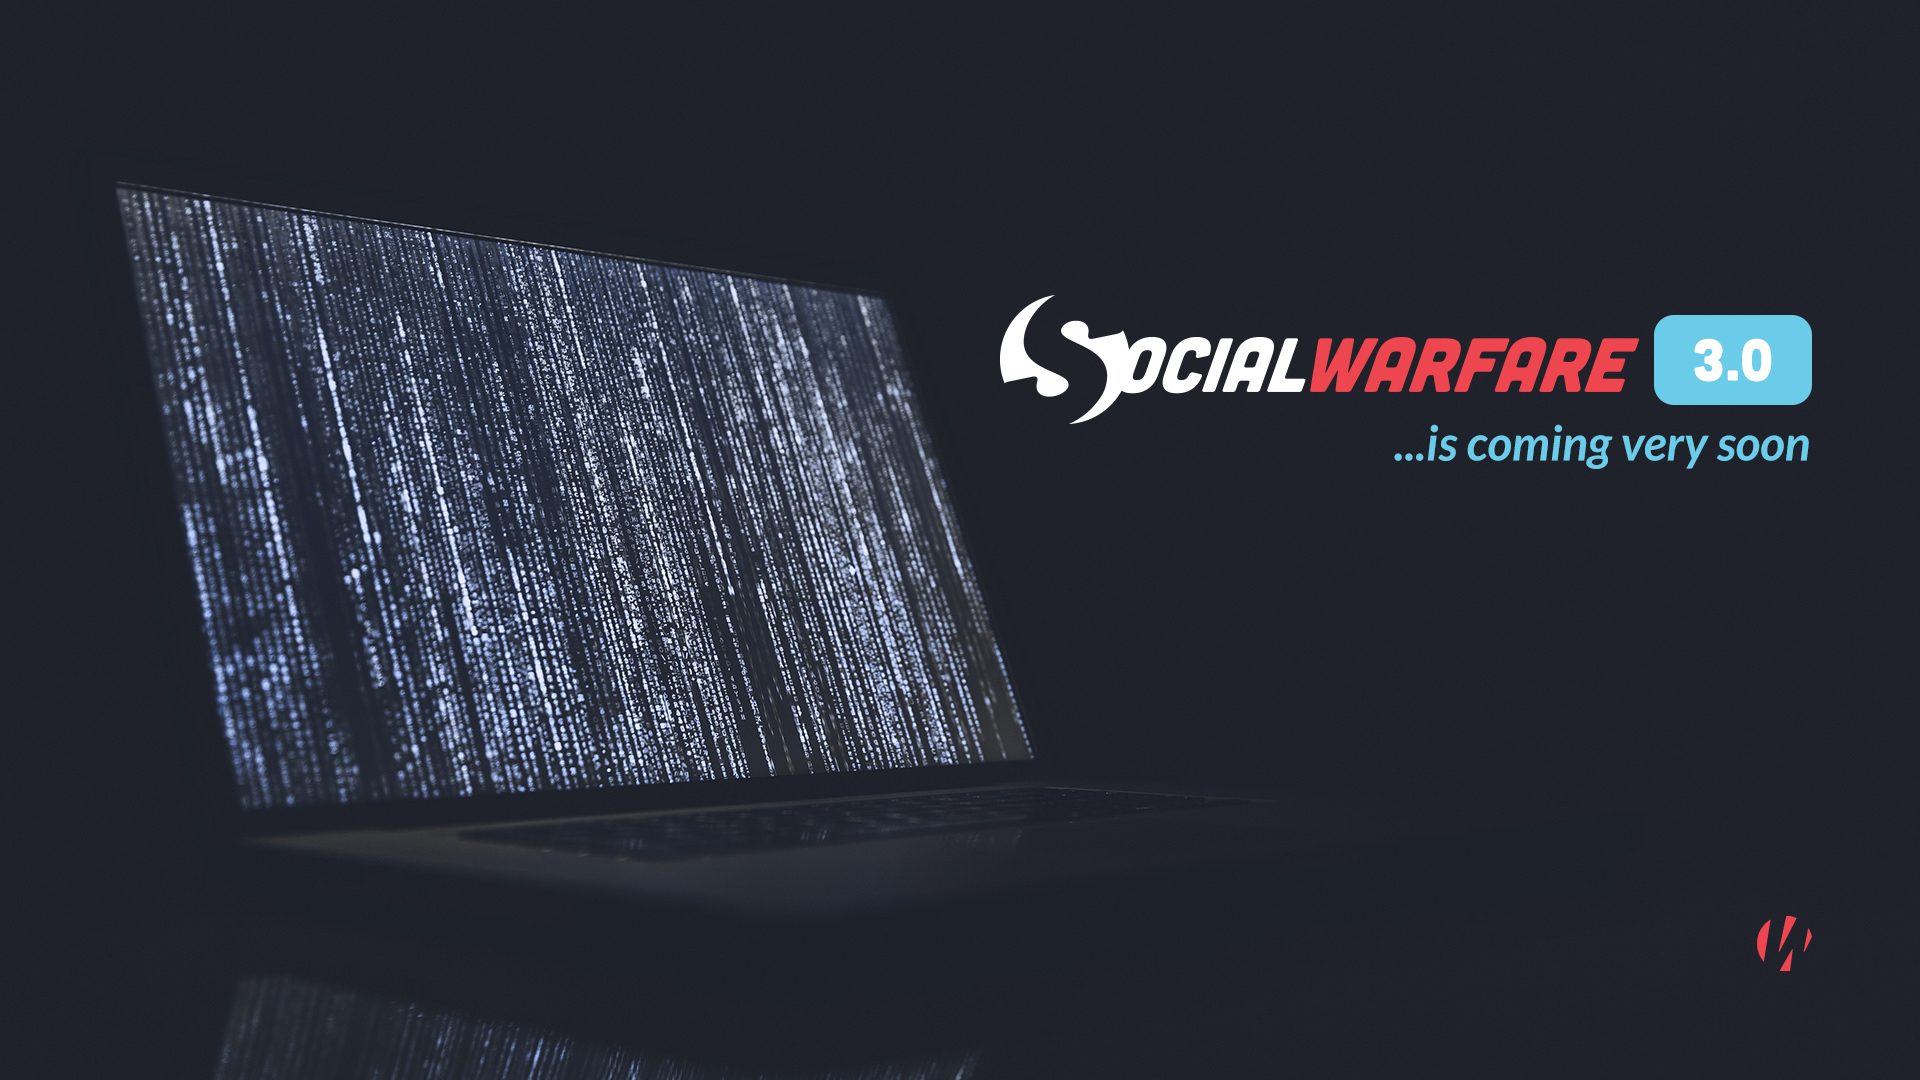 social warfare 3.0 preview